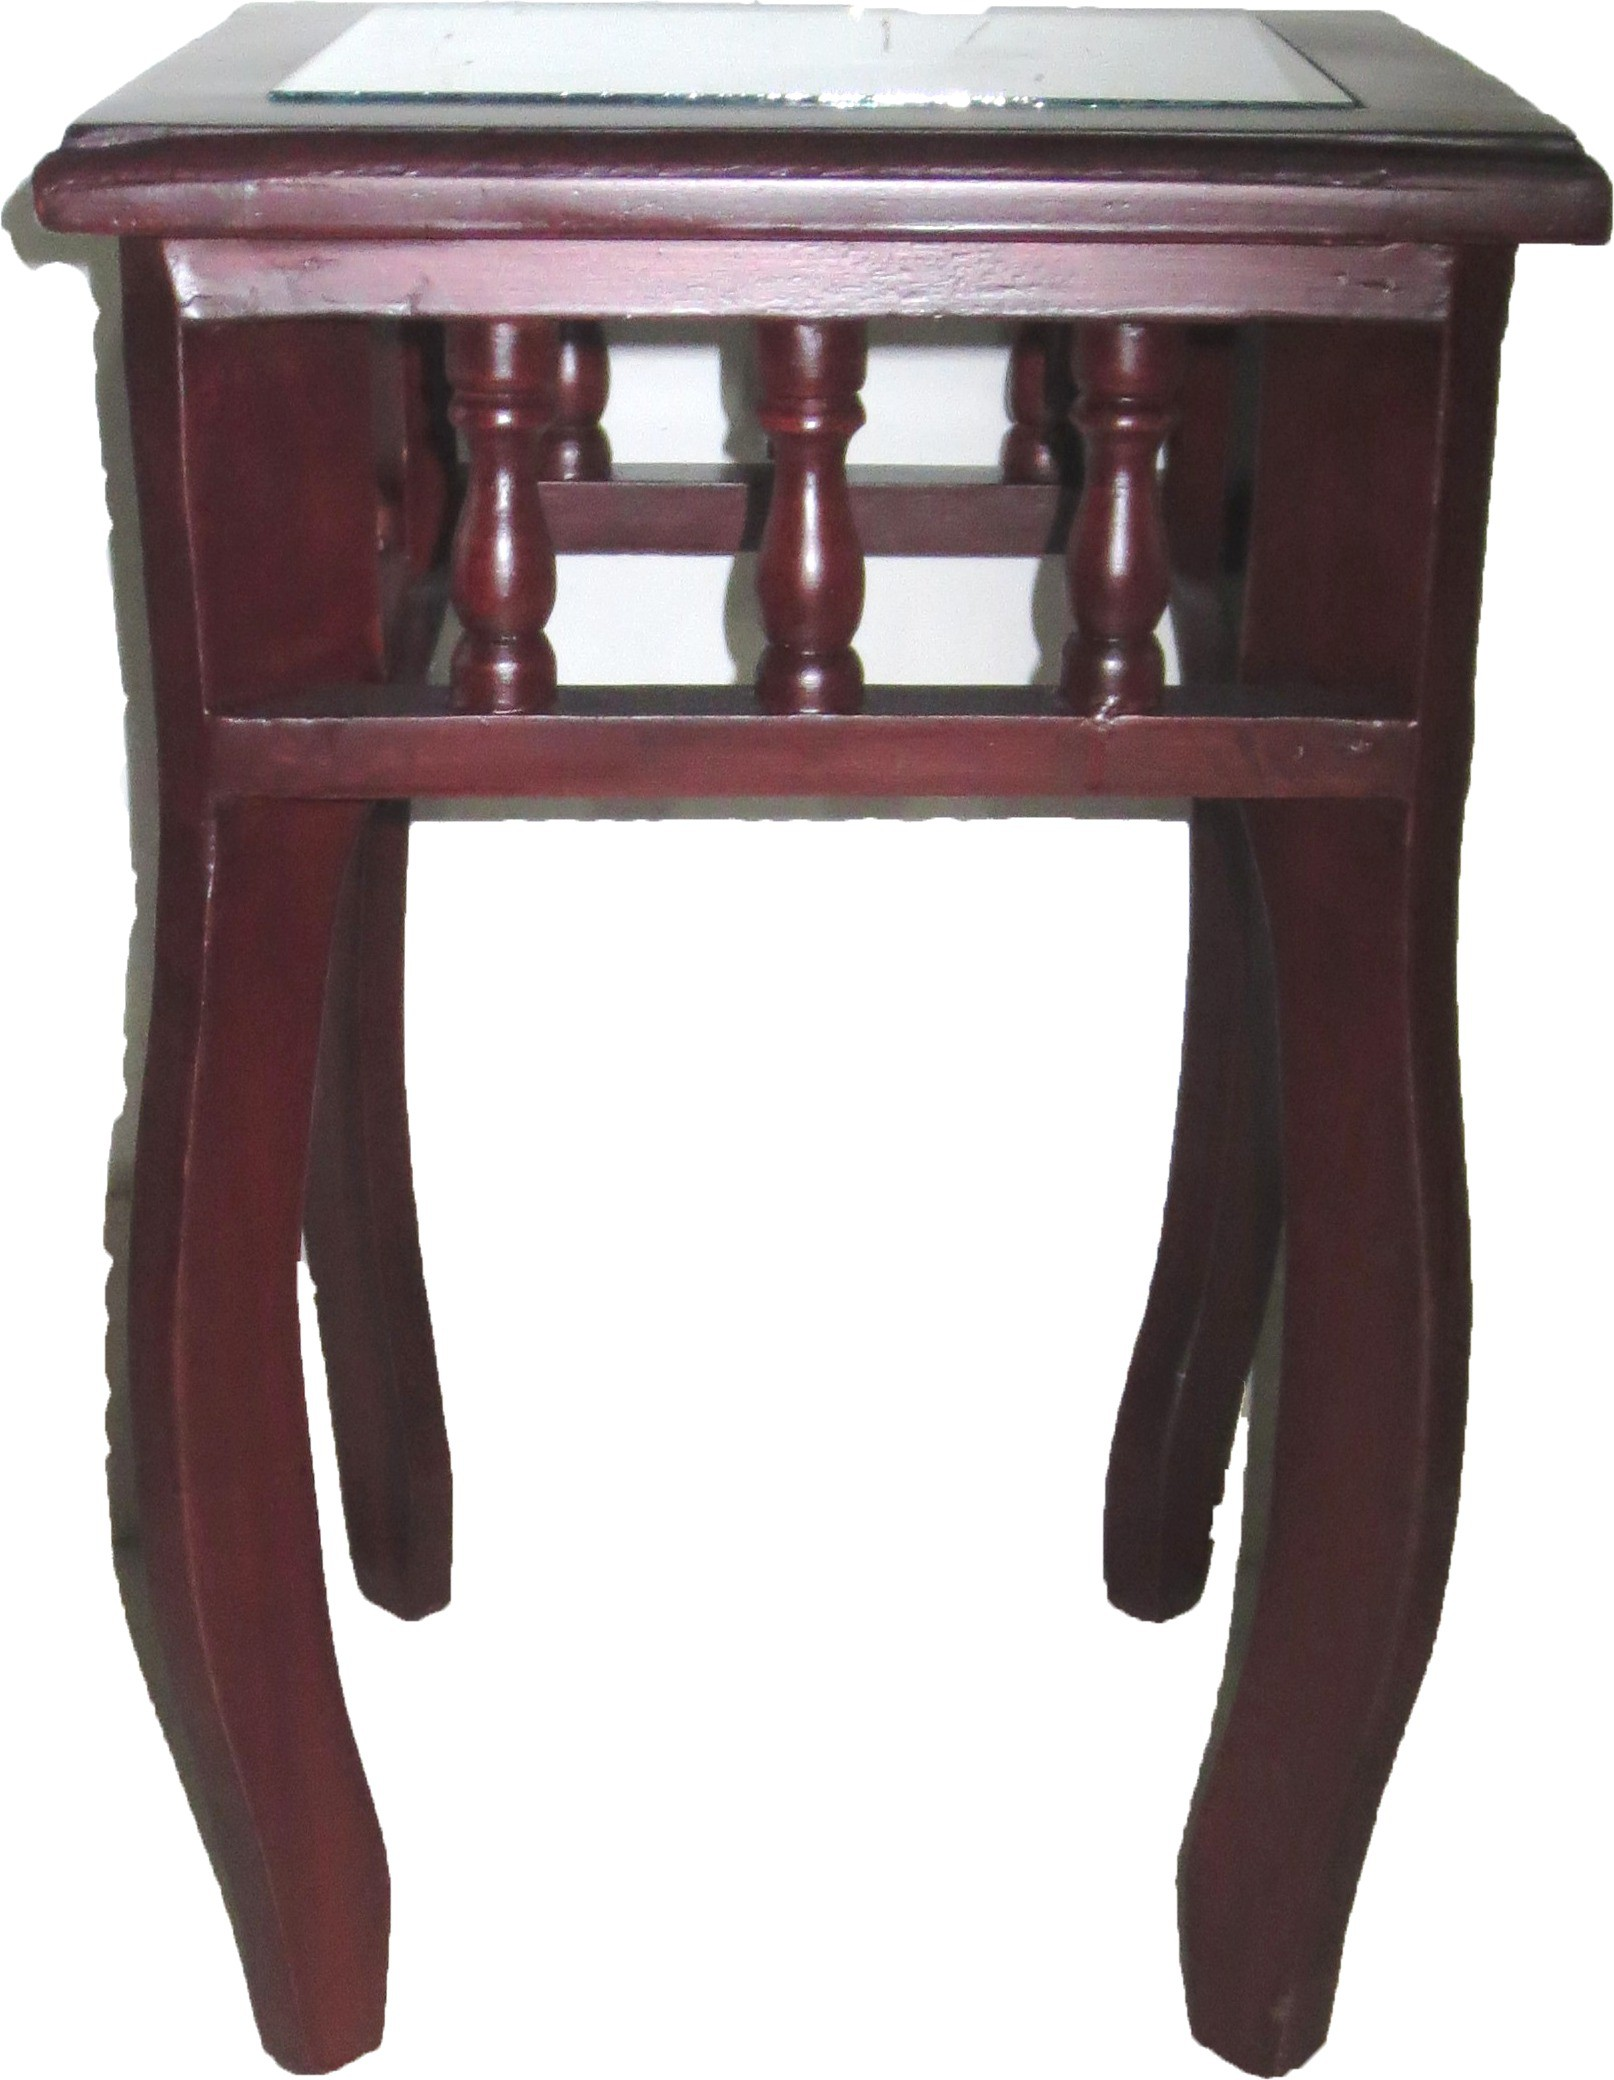 View Handicraft Shoppe Solid Wood Side Table(Finish Color - walnut brown) Furniture (Handicraft Shoppe)